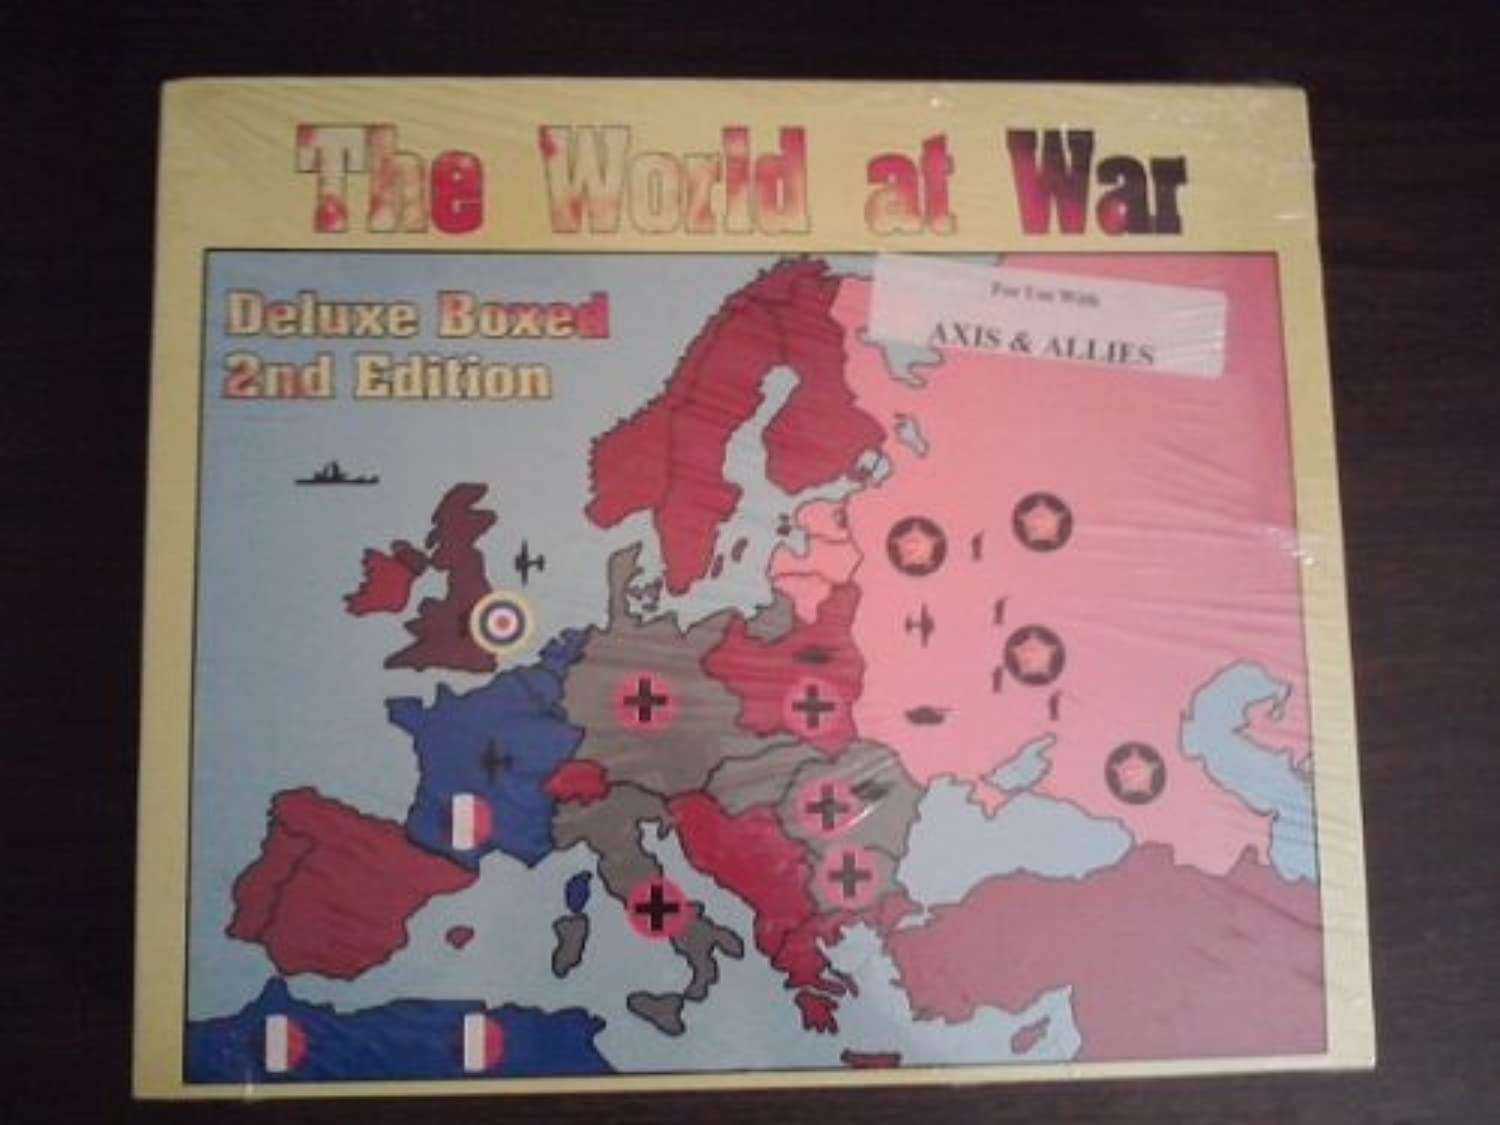 The World at War  Deluxe Boxed 3rd Edition  Expansion for Use with Axis & Allies